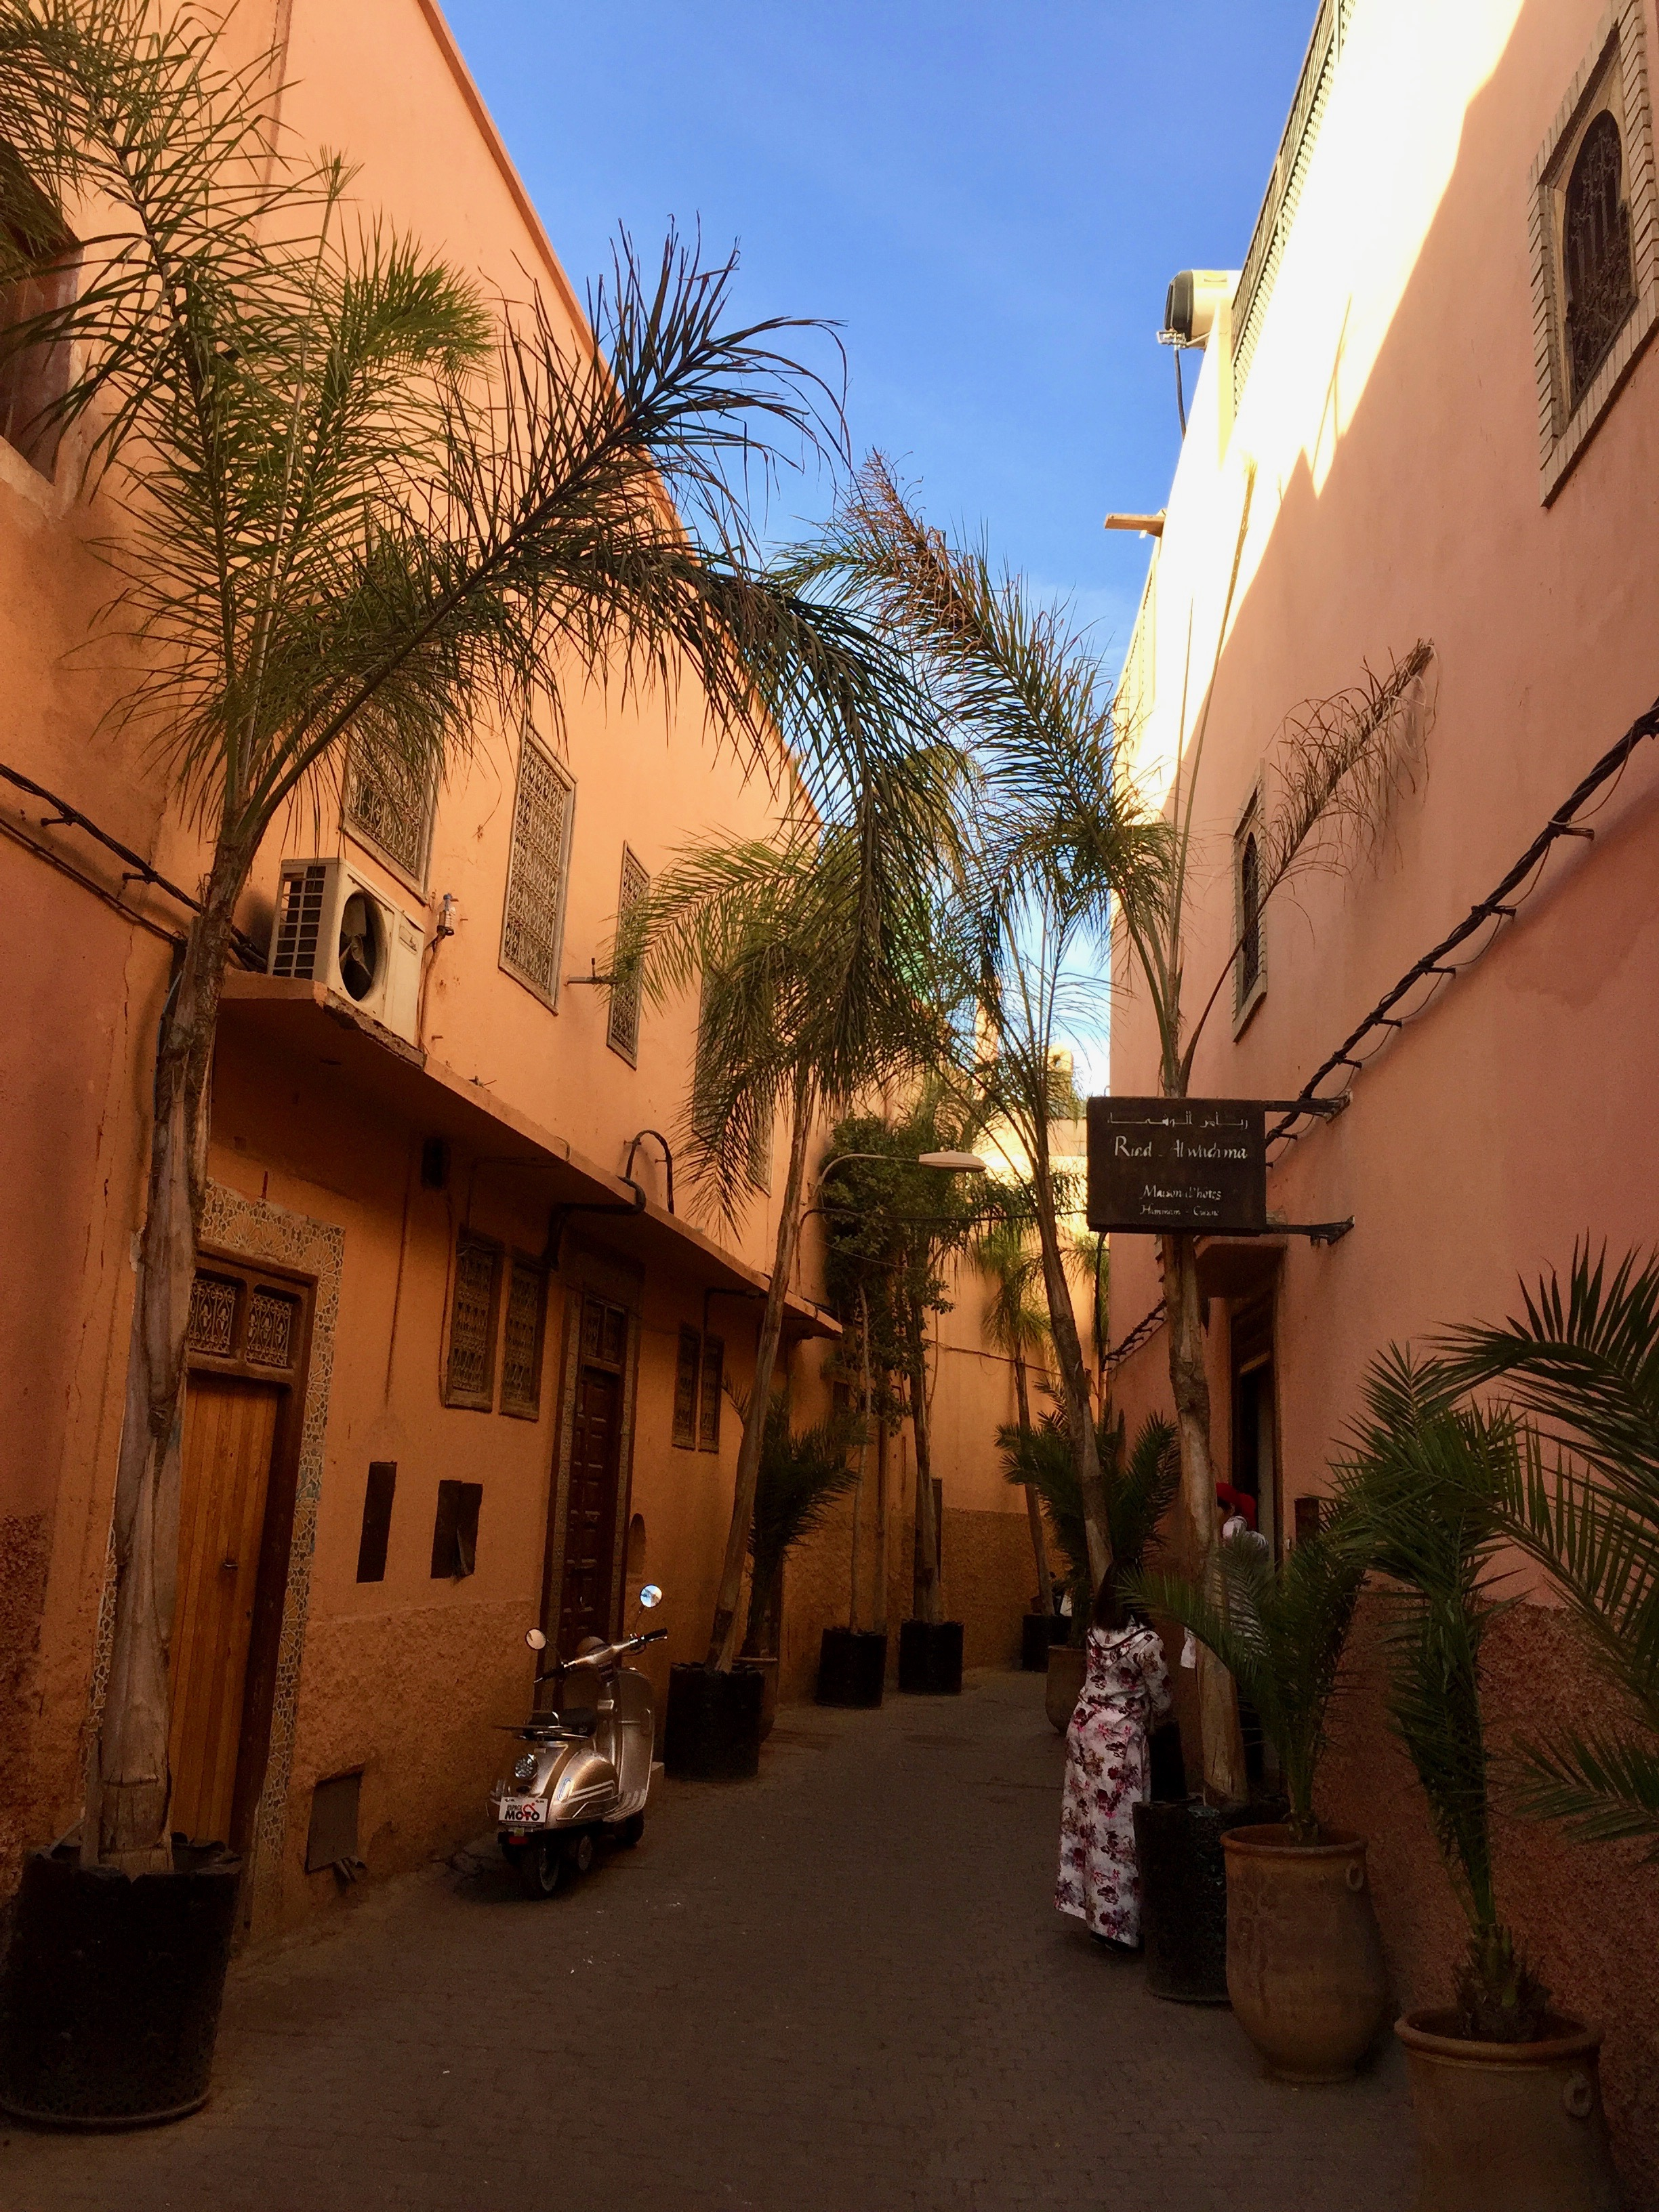 The alley way to Maison Arabe. One of the best areas to start exploring the Medina.